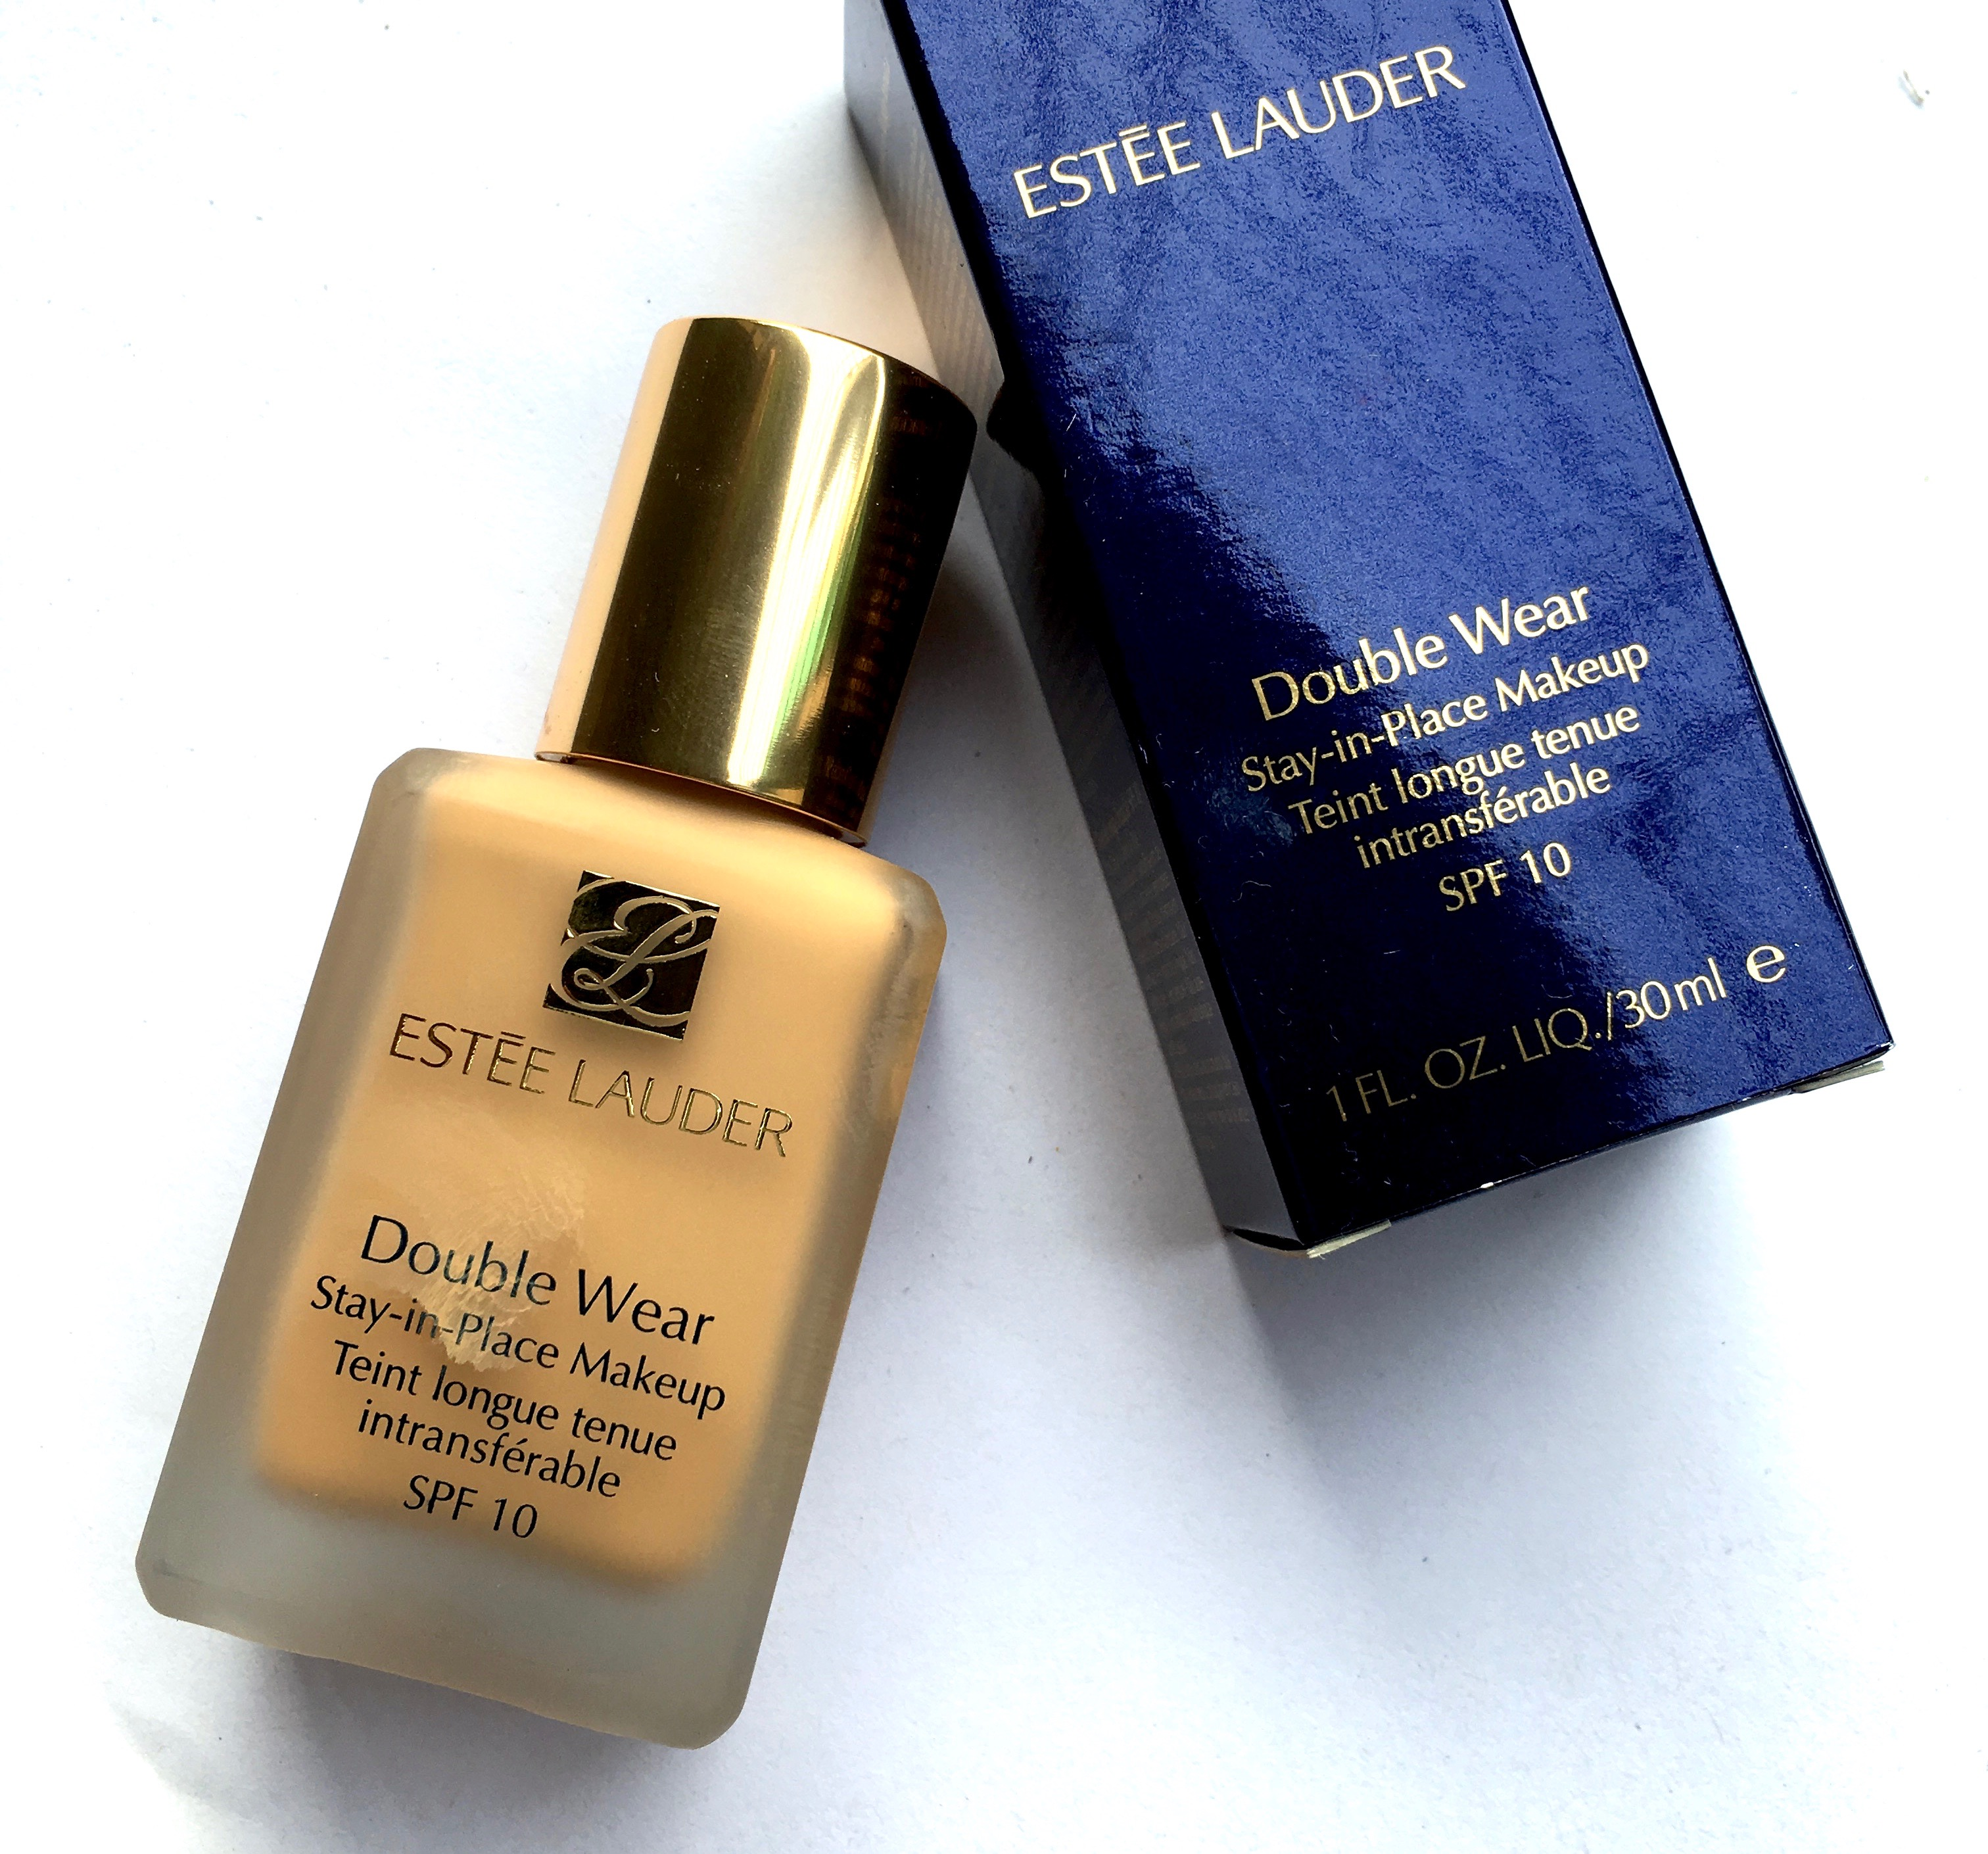 dbb8fa35f5ccc Estee Lauder Double Wear Stay-in-Place Makeup Foundation Review, Swatches